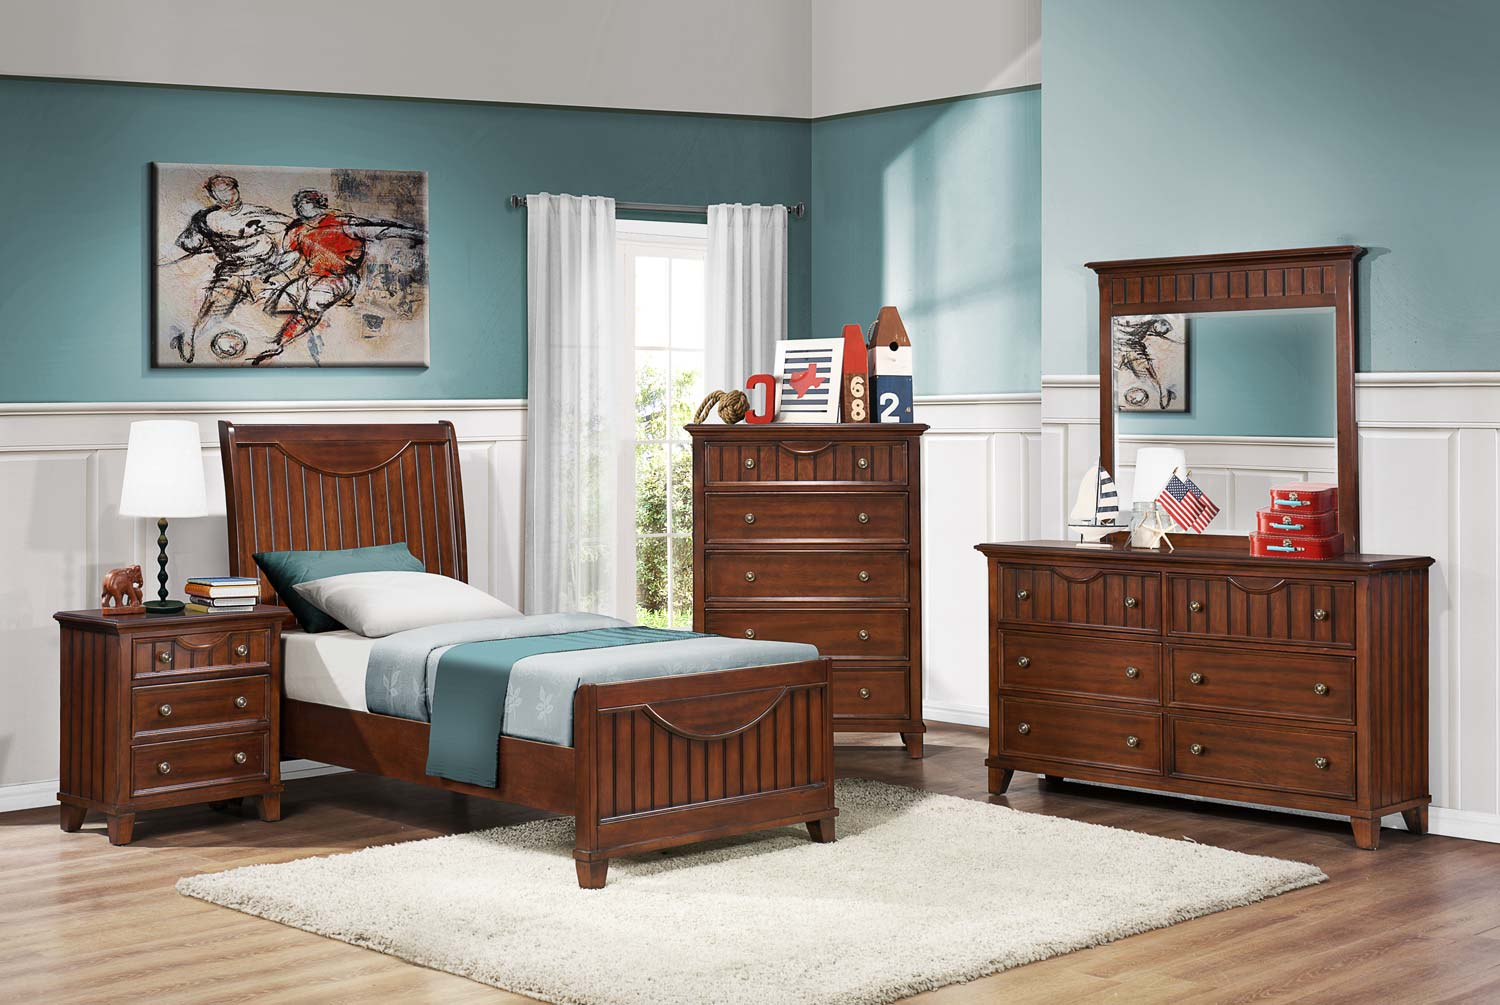 Homelegance alyssa youth bedroom set warm brown cherry for H b bedrooms oldham